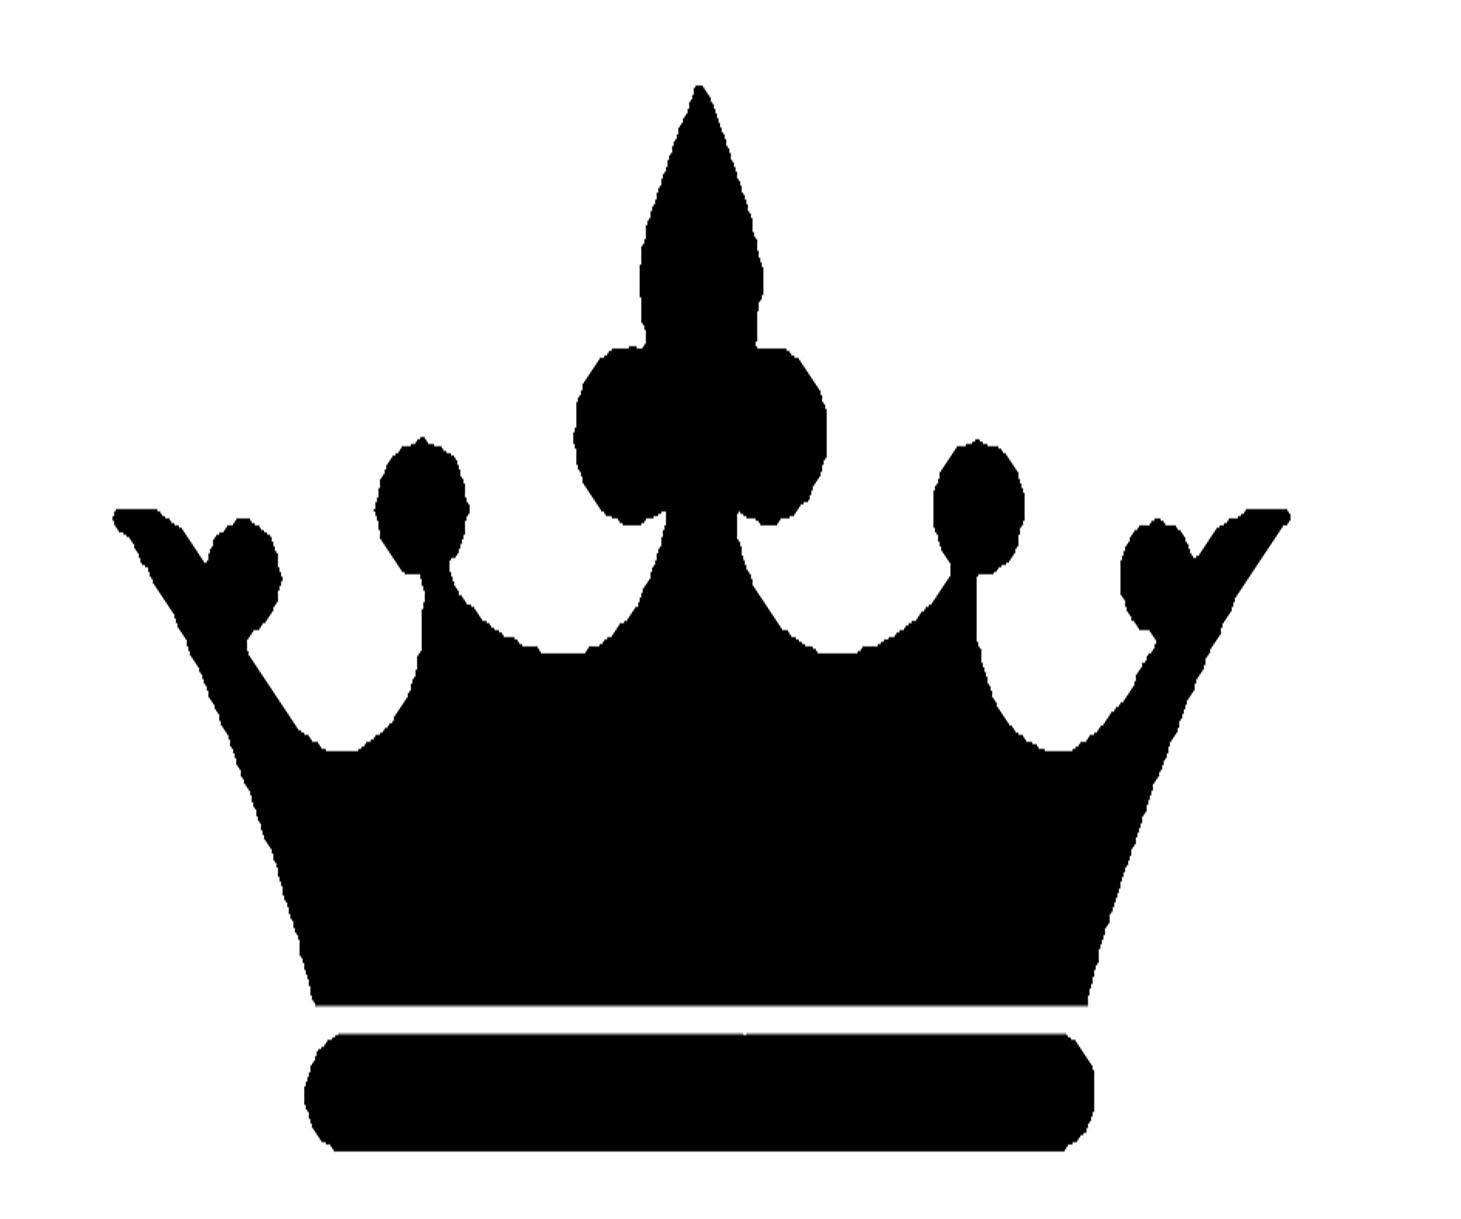 12 Simple Crown Clipart Free  - Crown Outline Clip Art